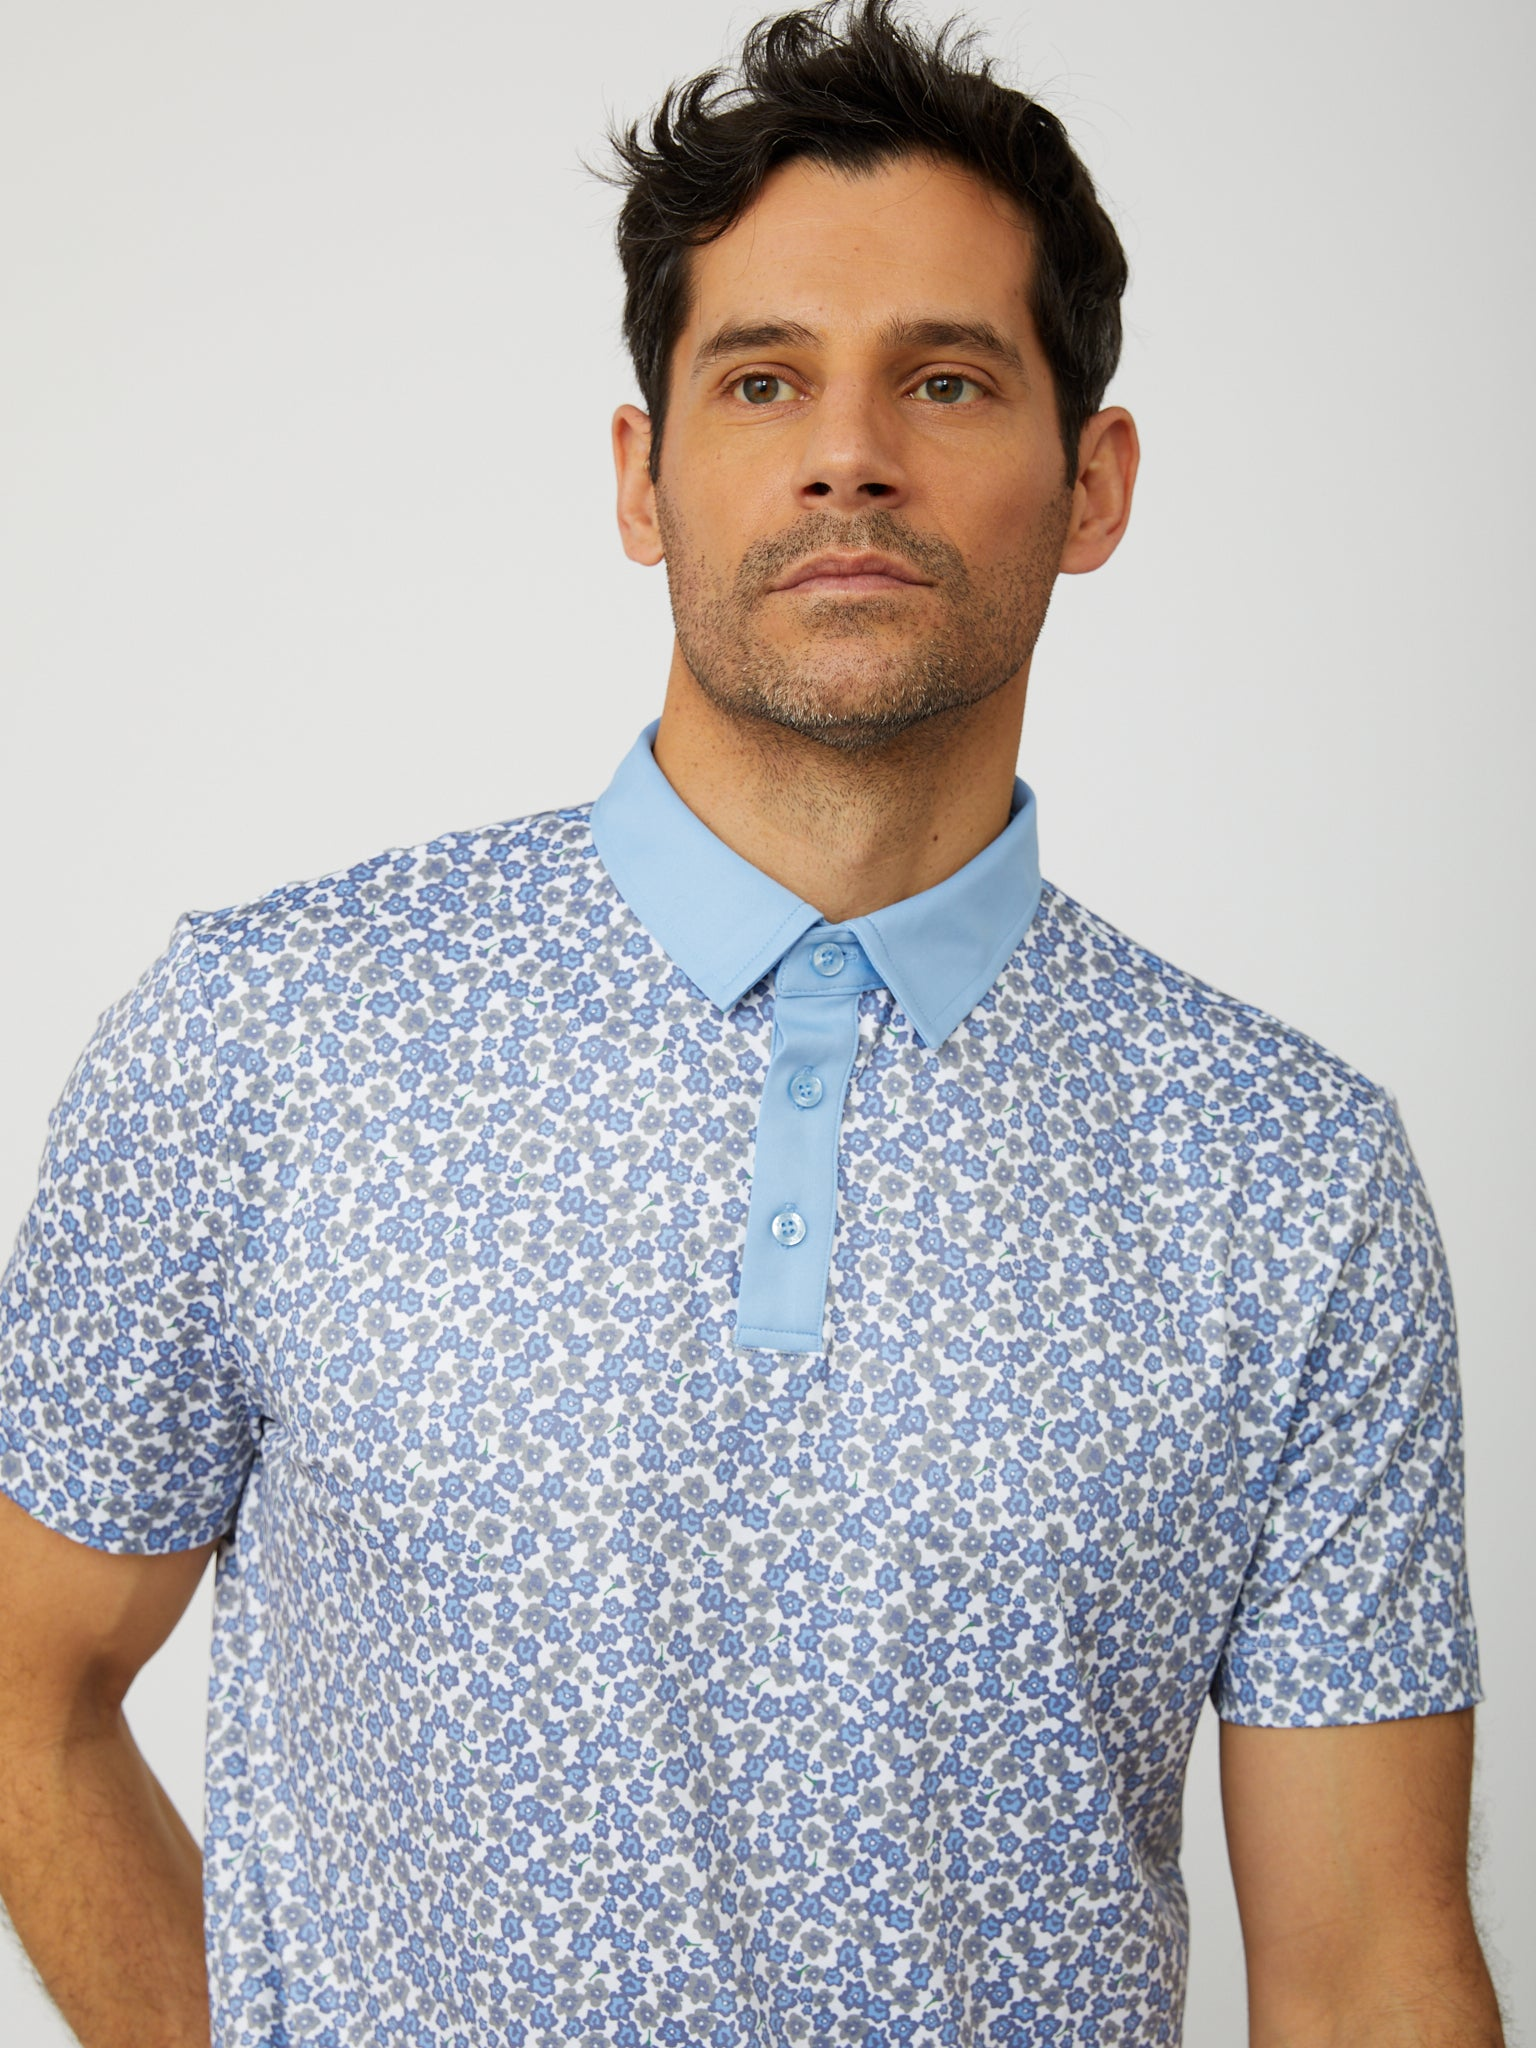 Fitch Polo in Placid Blue/Multi